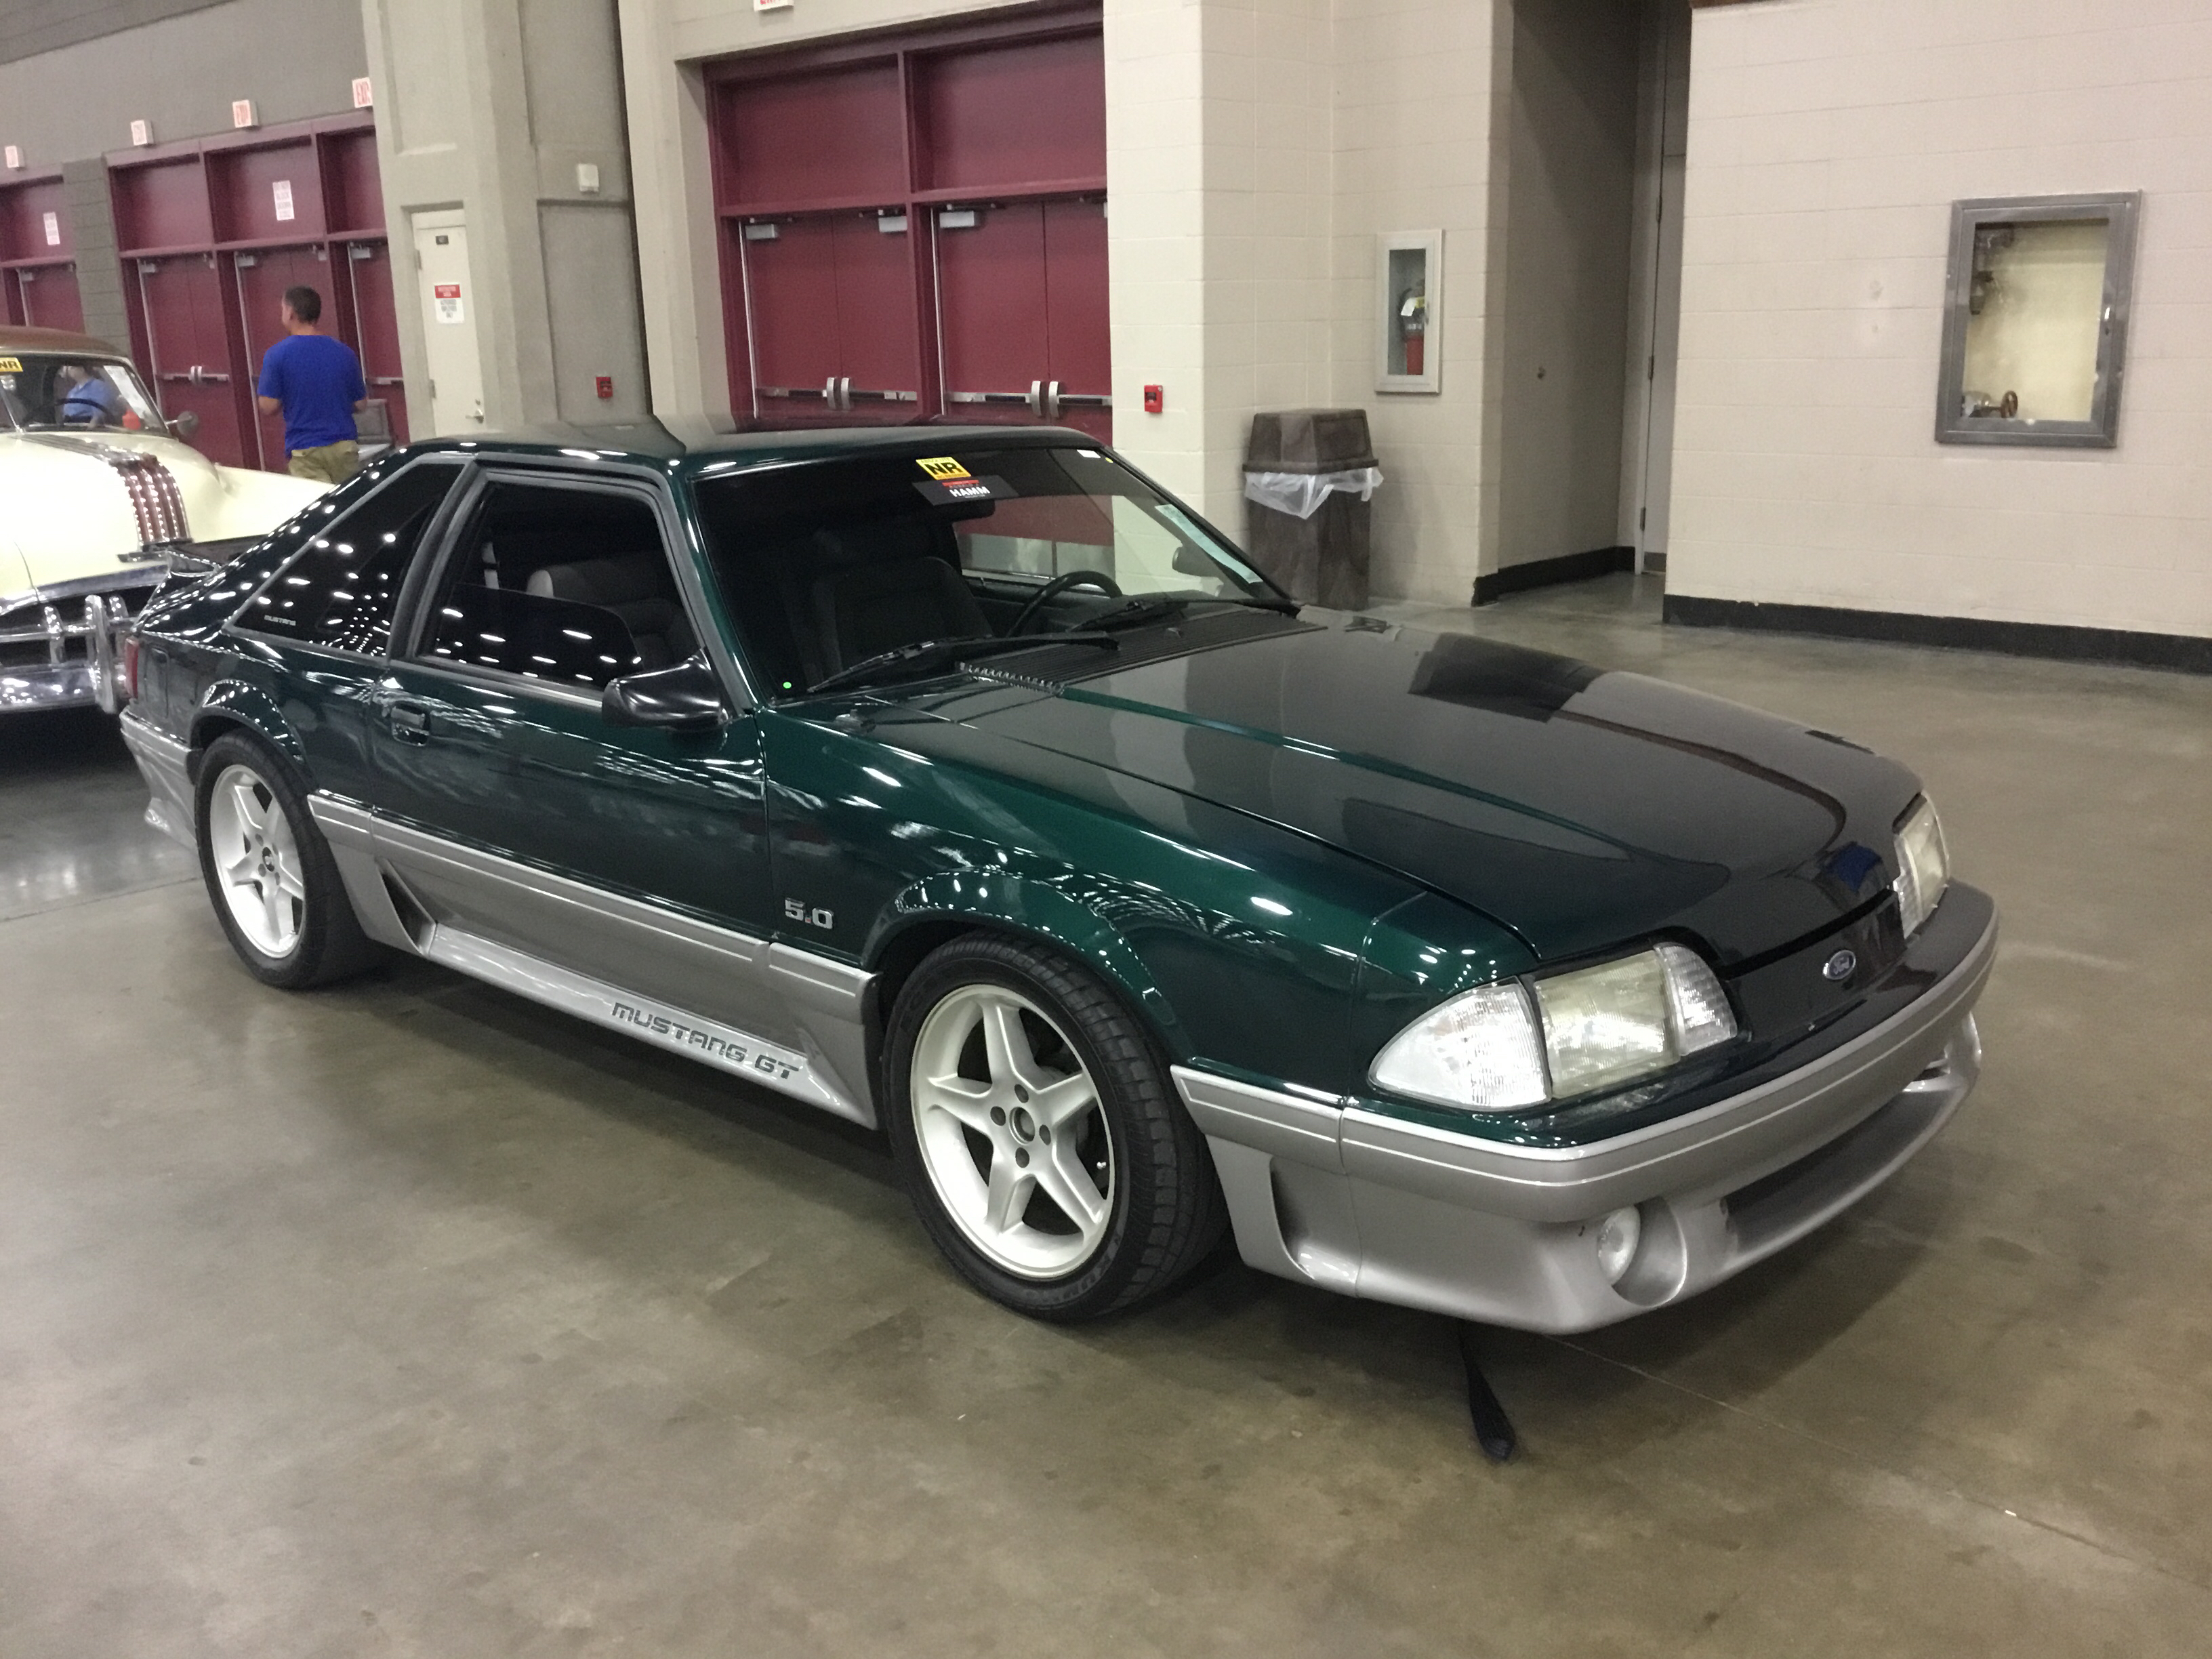 91 Mustang Gt >> 1991 Ford Mustang 5 0 Lx Values Hagerty Valuation Tool